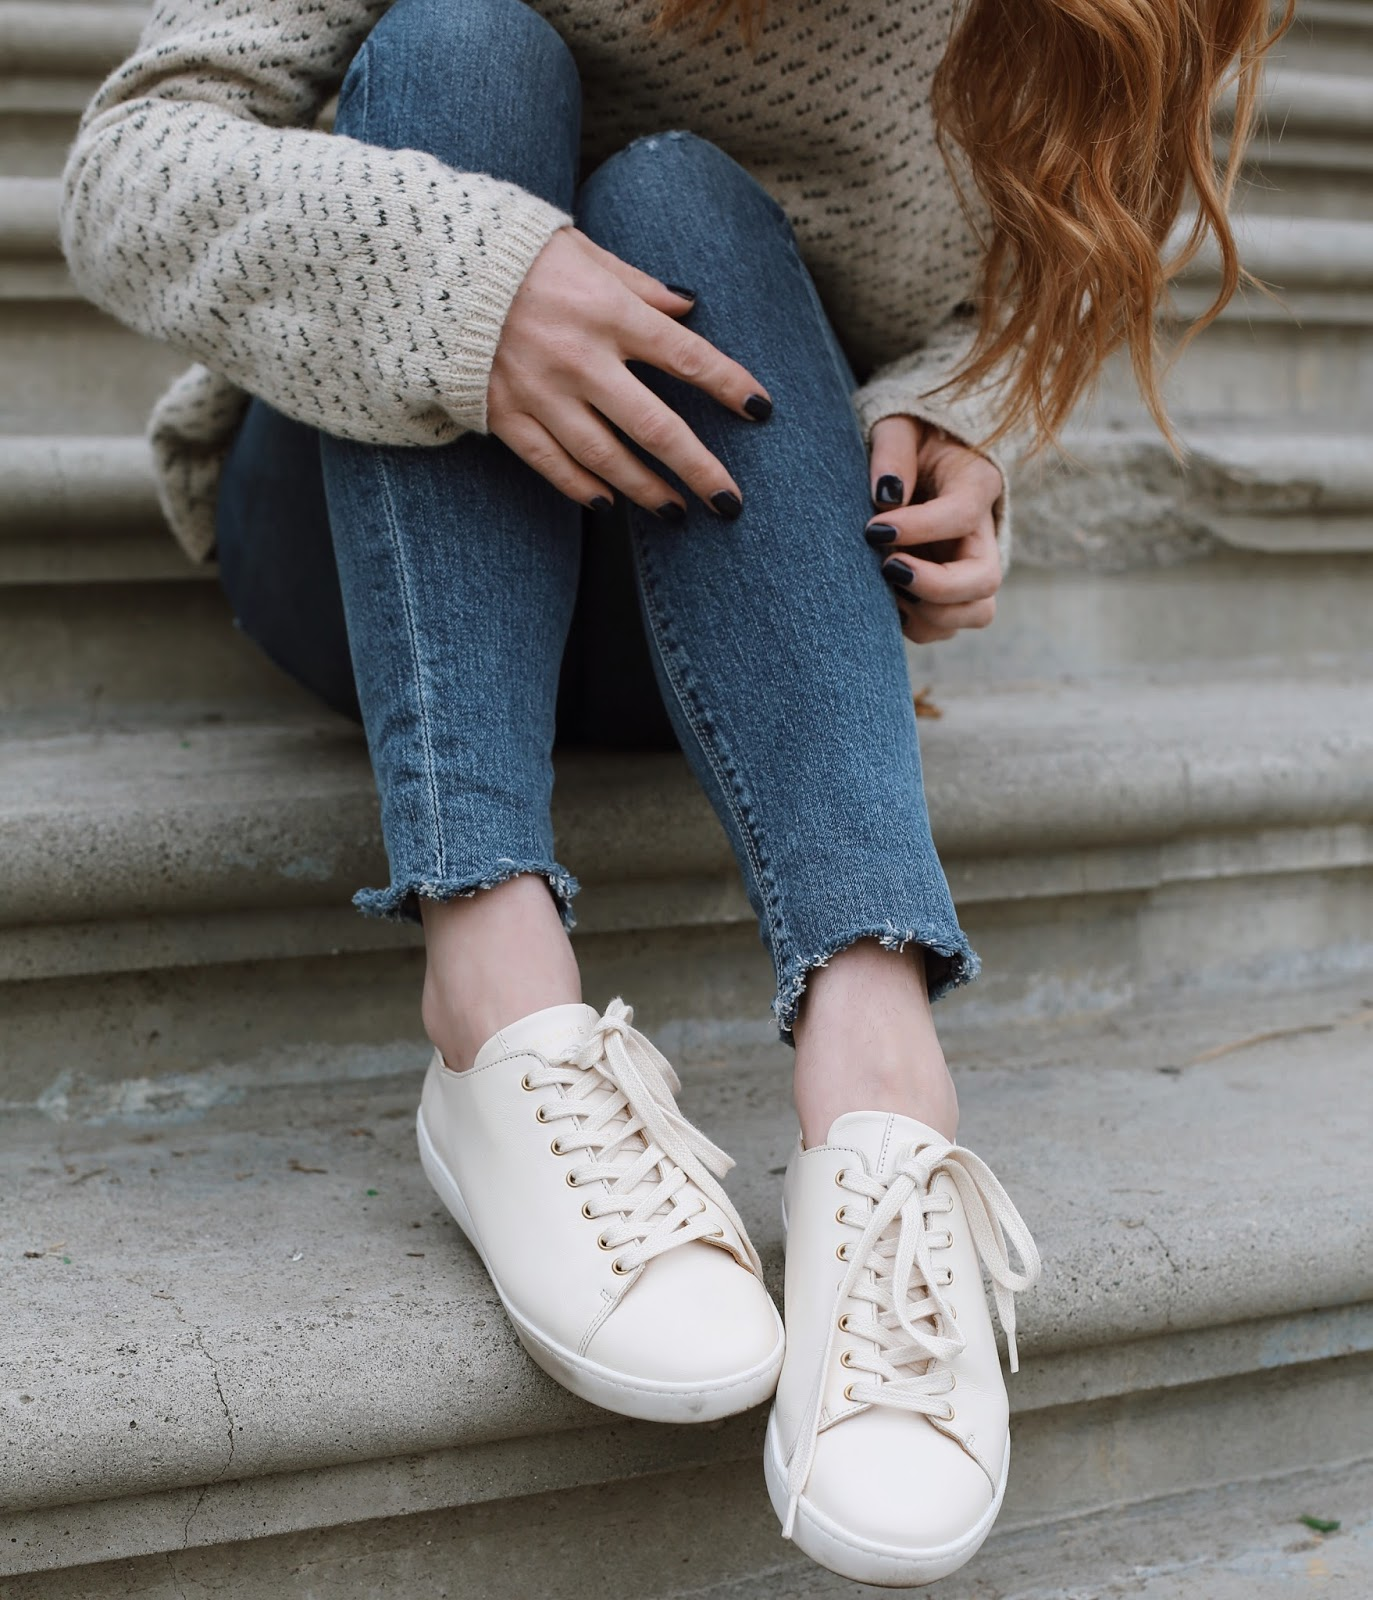 c6bfc0b44c8266 Enter the Sezane Jack Sneaker – *drool* If you've been following me for  over a year, you know that I got my first pair (in white) right before the  holidays ...